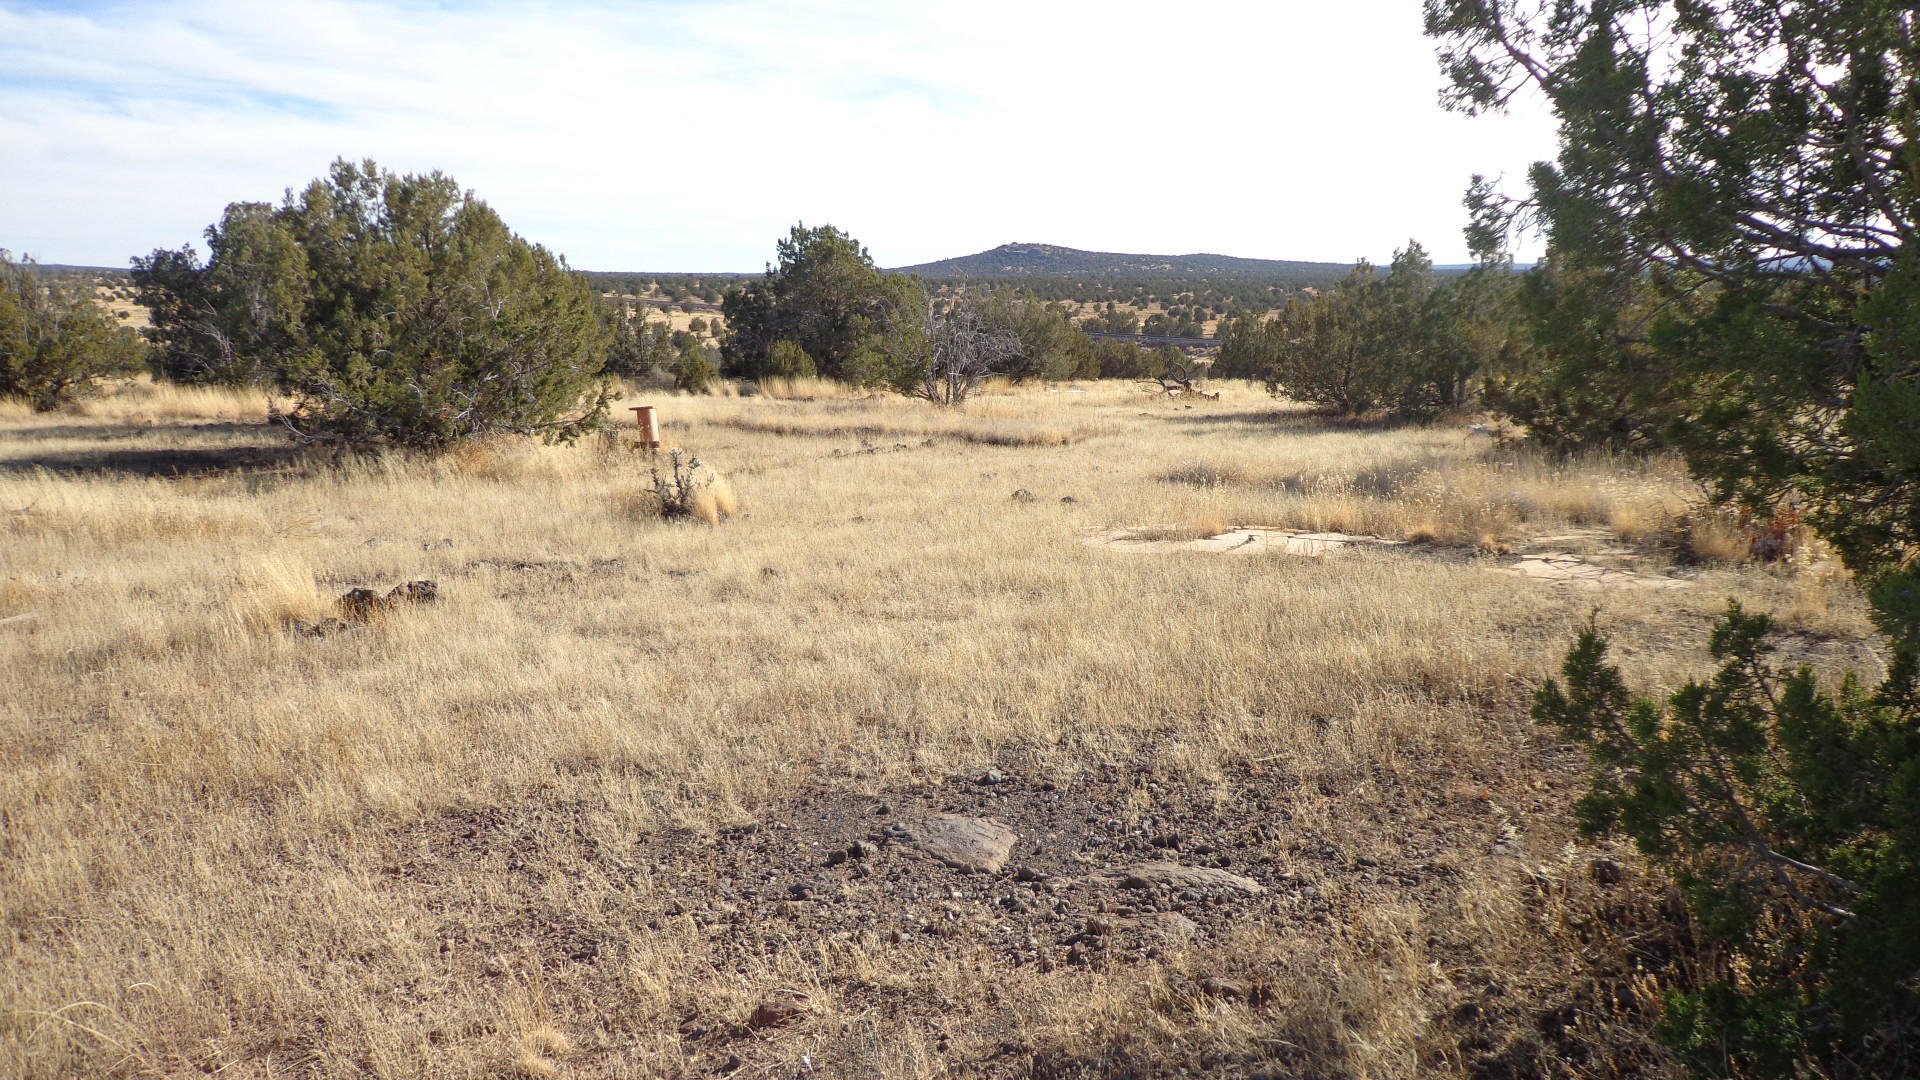 211 Juniperwood Rnch Un 3 Lot 211, Ash Fork AZ 86320